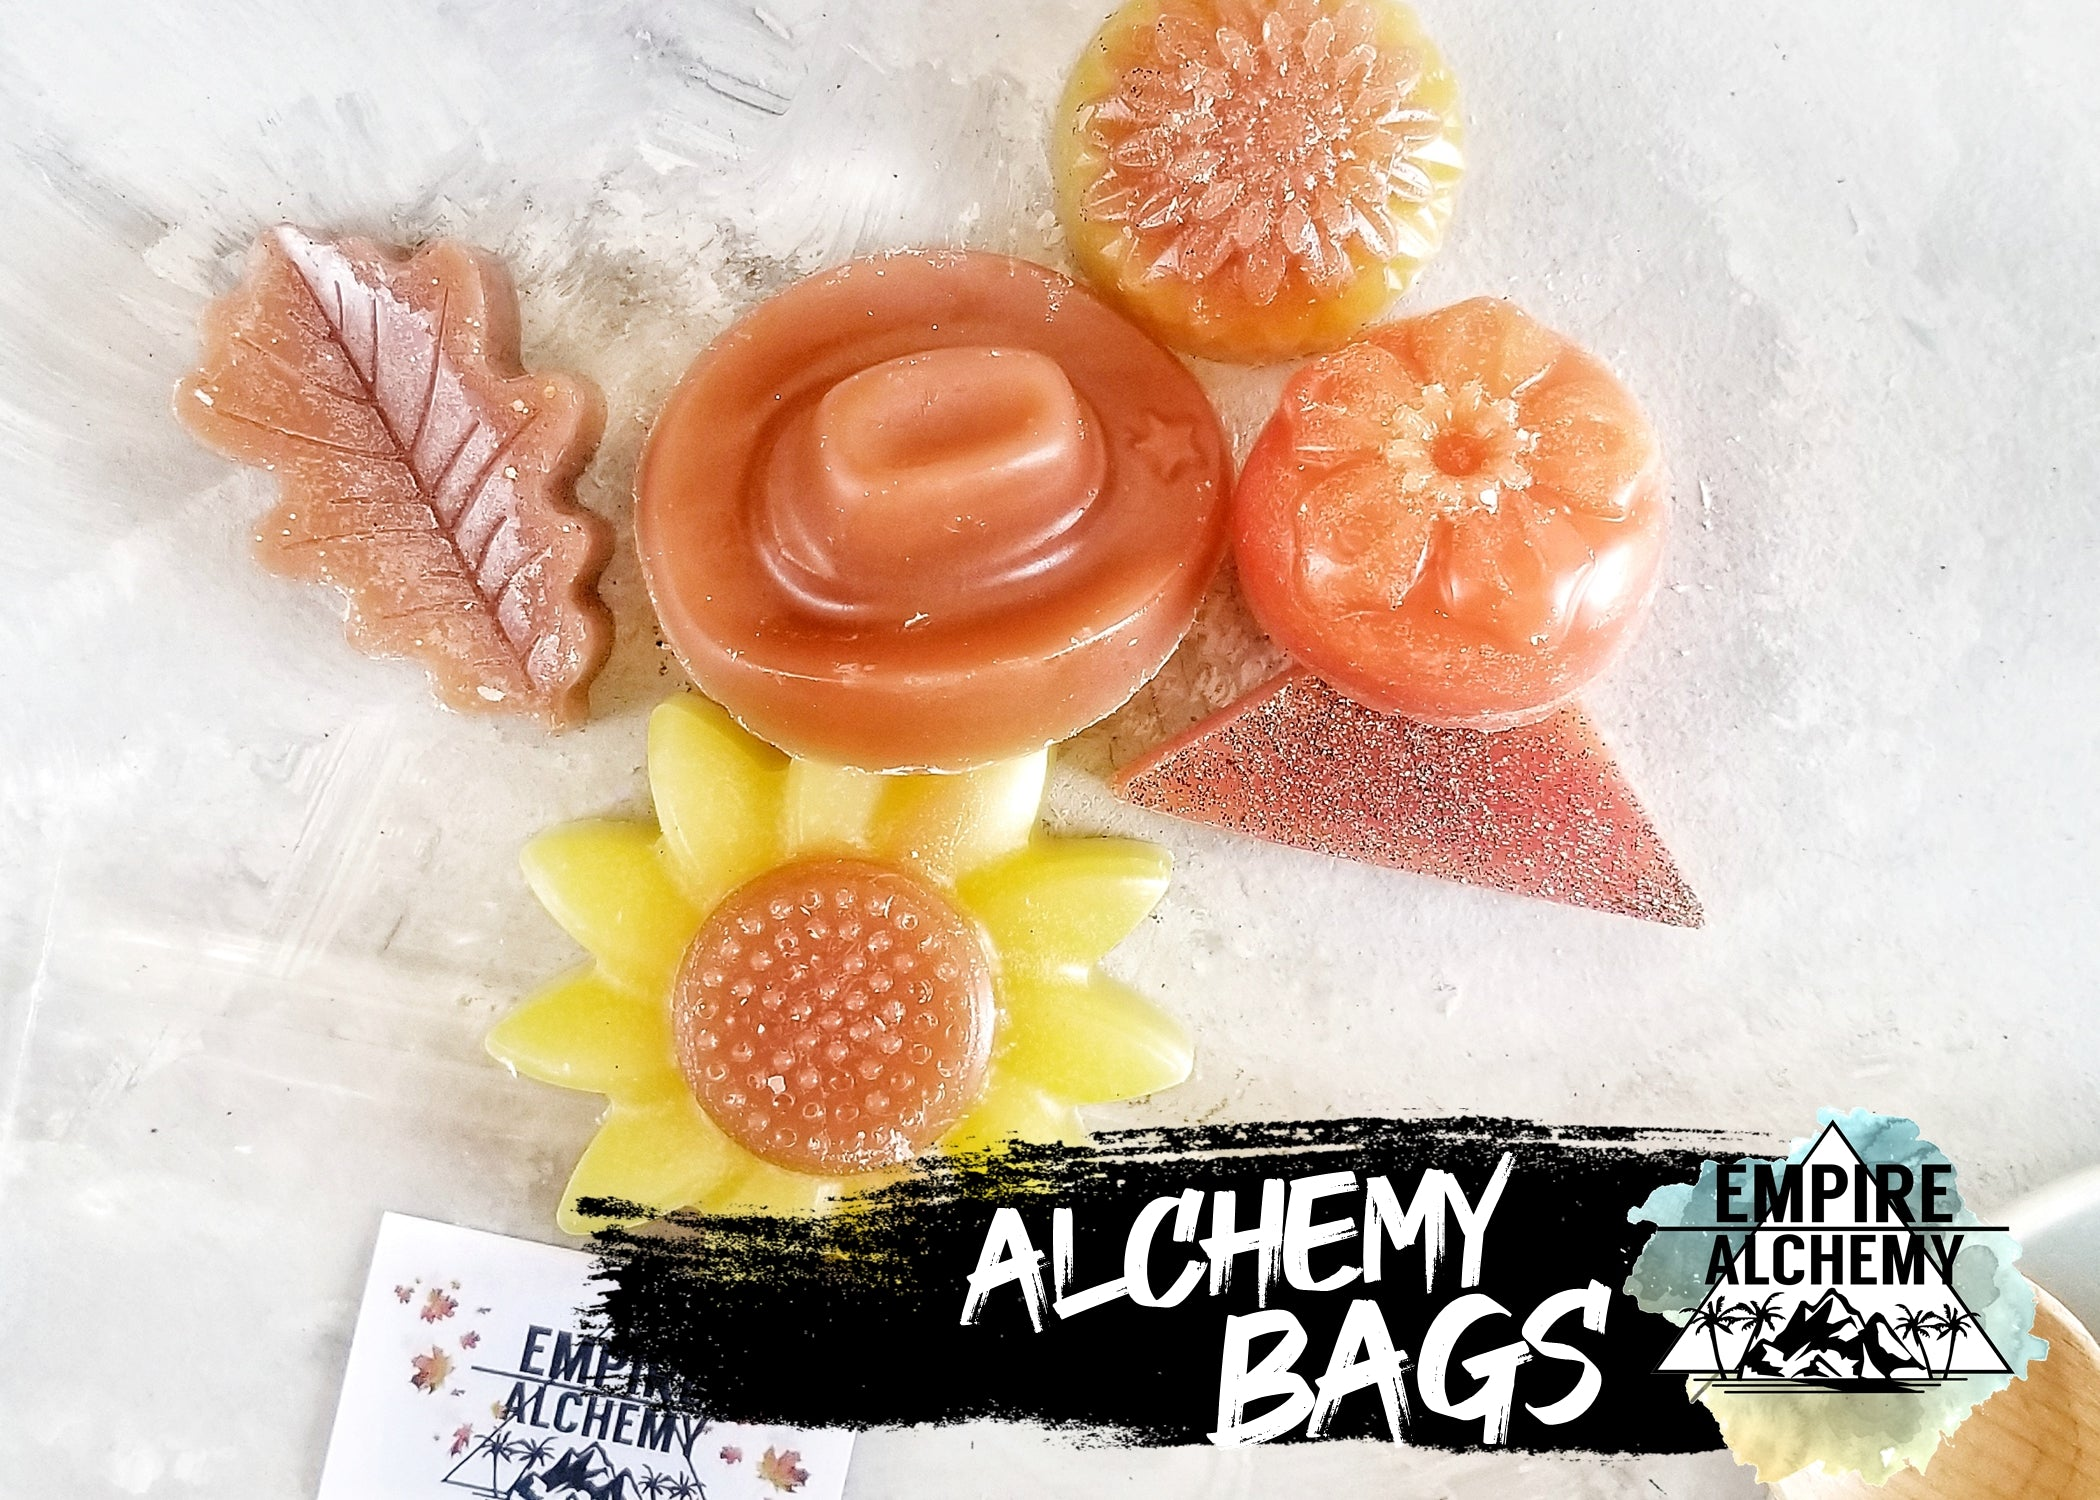 The Shape Scented Wax Ready-To-Ship Alchemy Bag